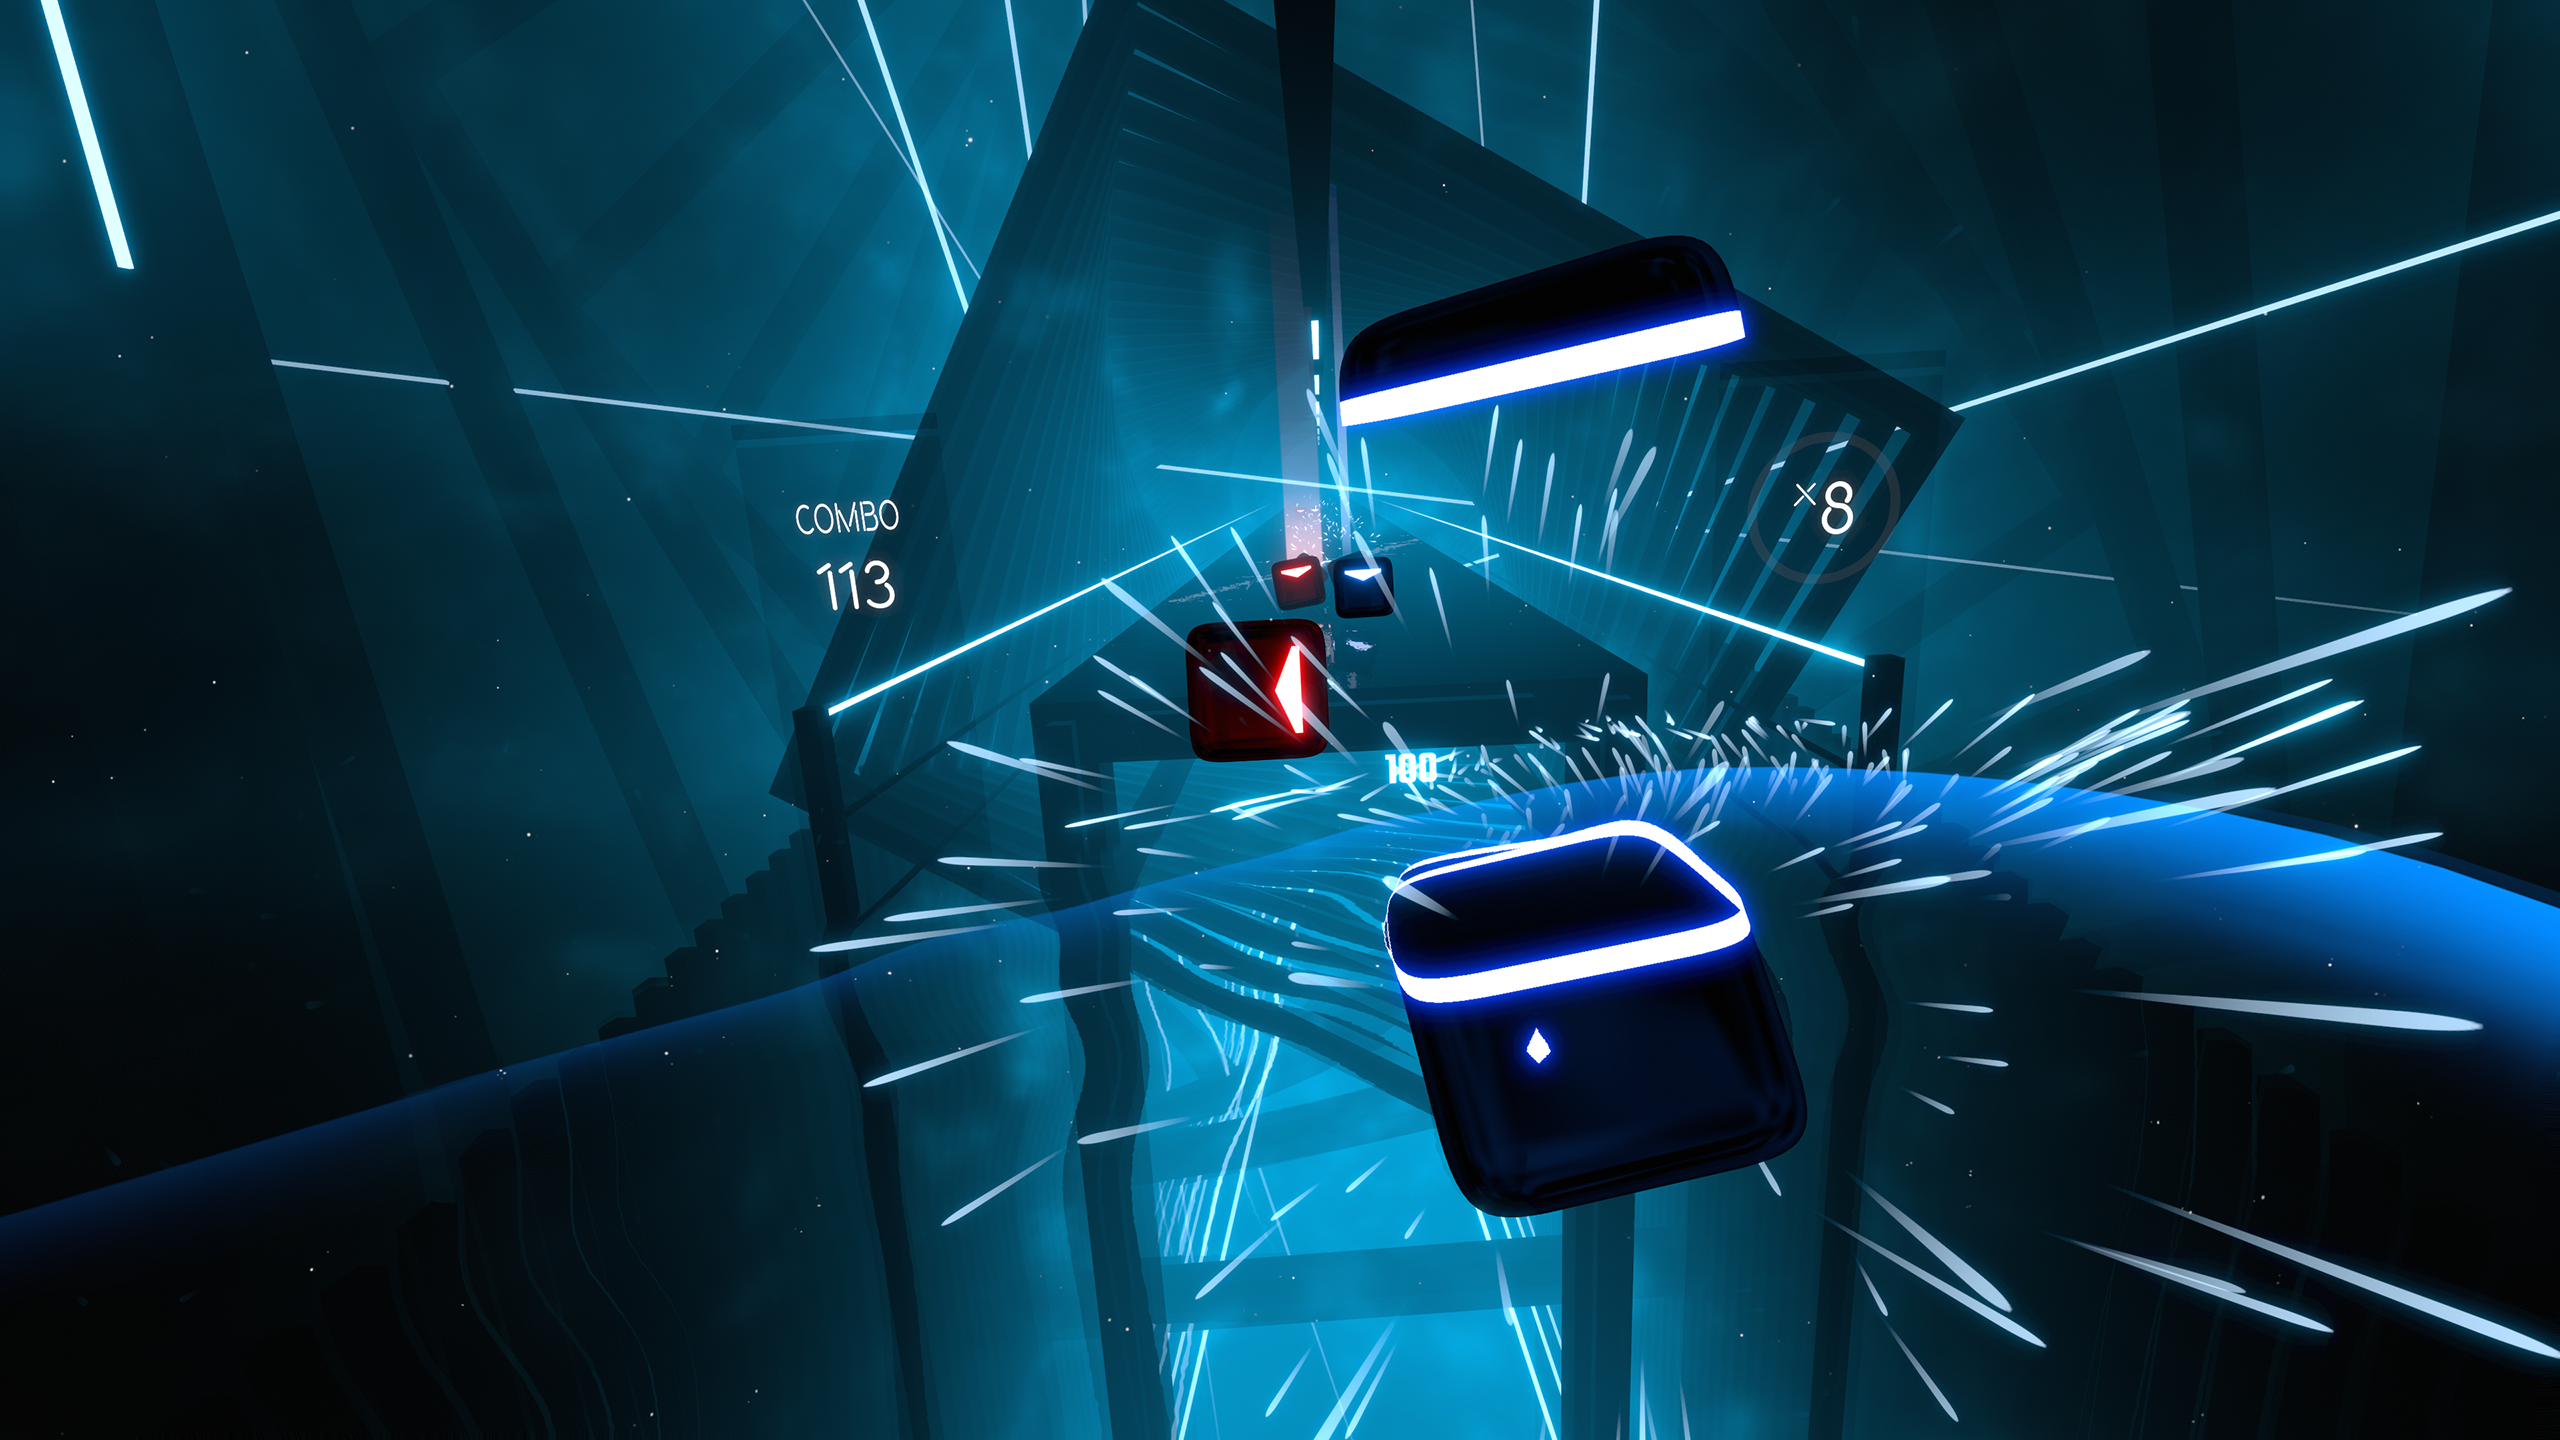 Oculus Quest devs see standalone VR as good for sales